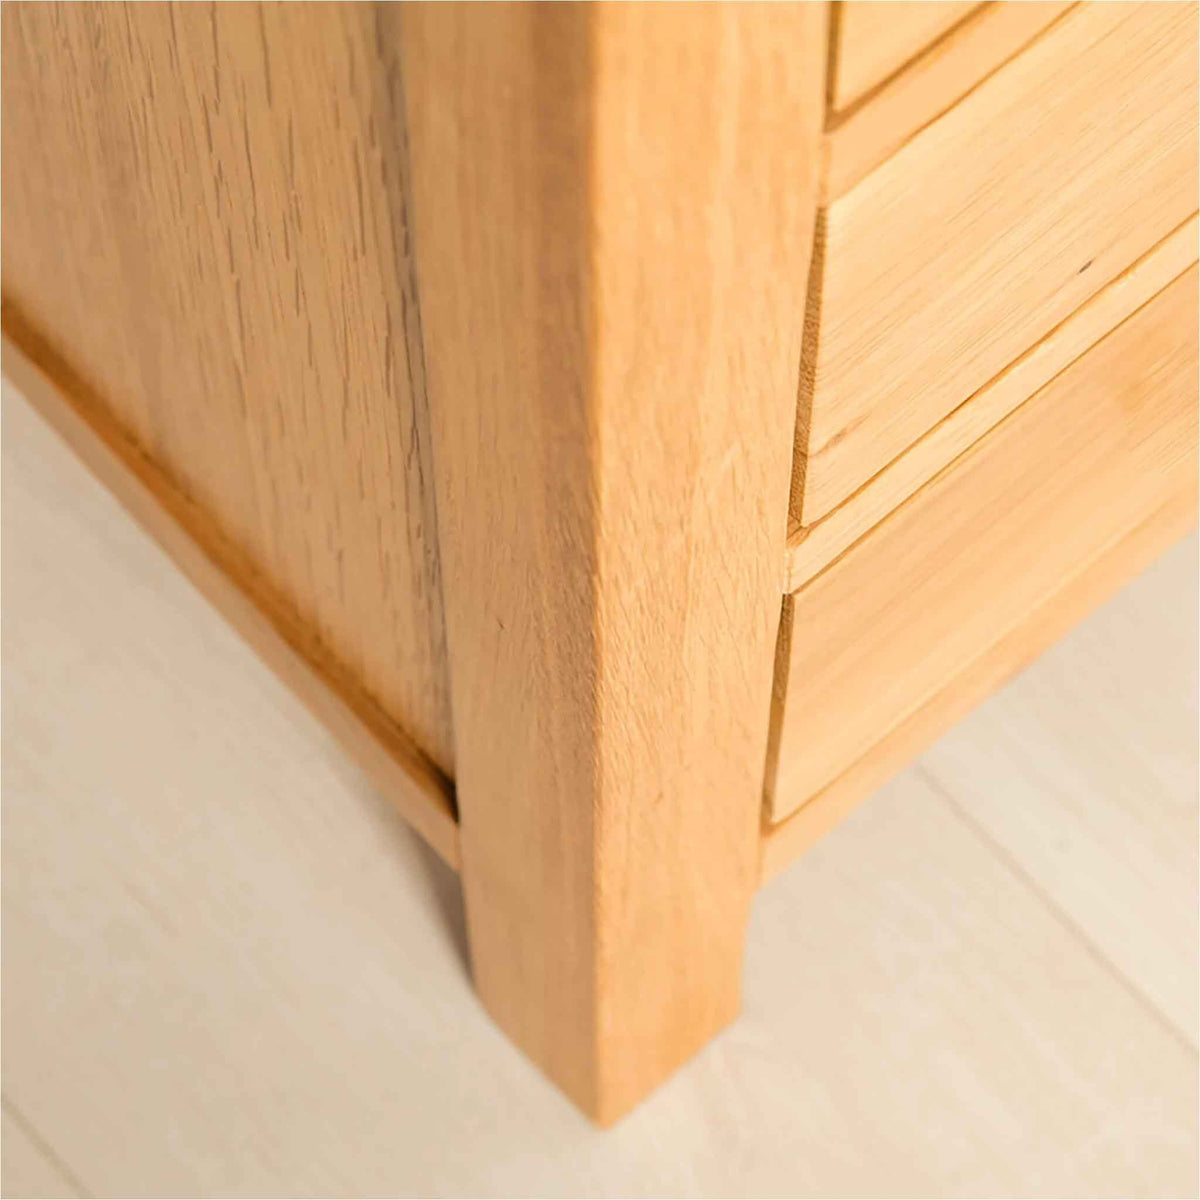 Leg view of the Abbey Light Oak Bedside Table by Roseland Furniture